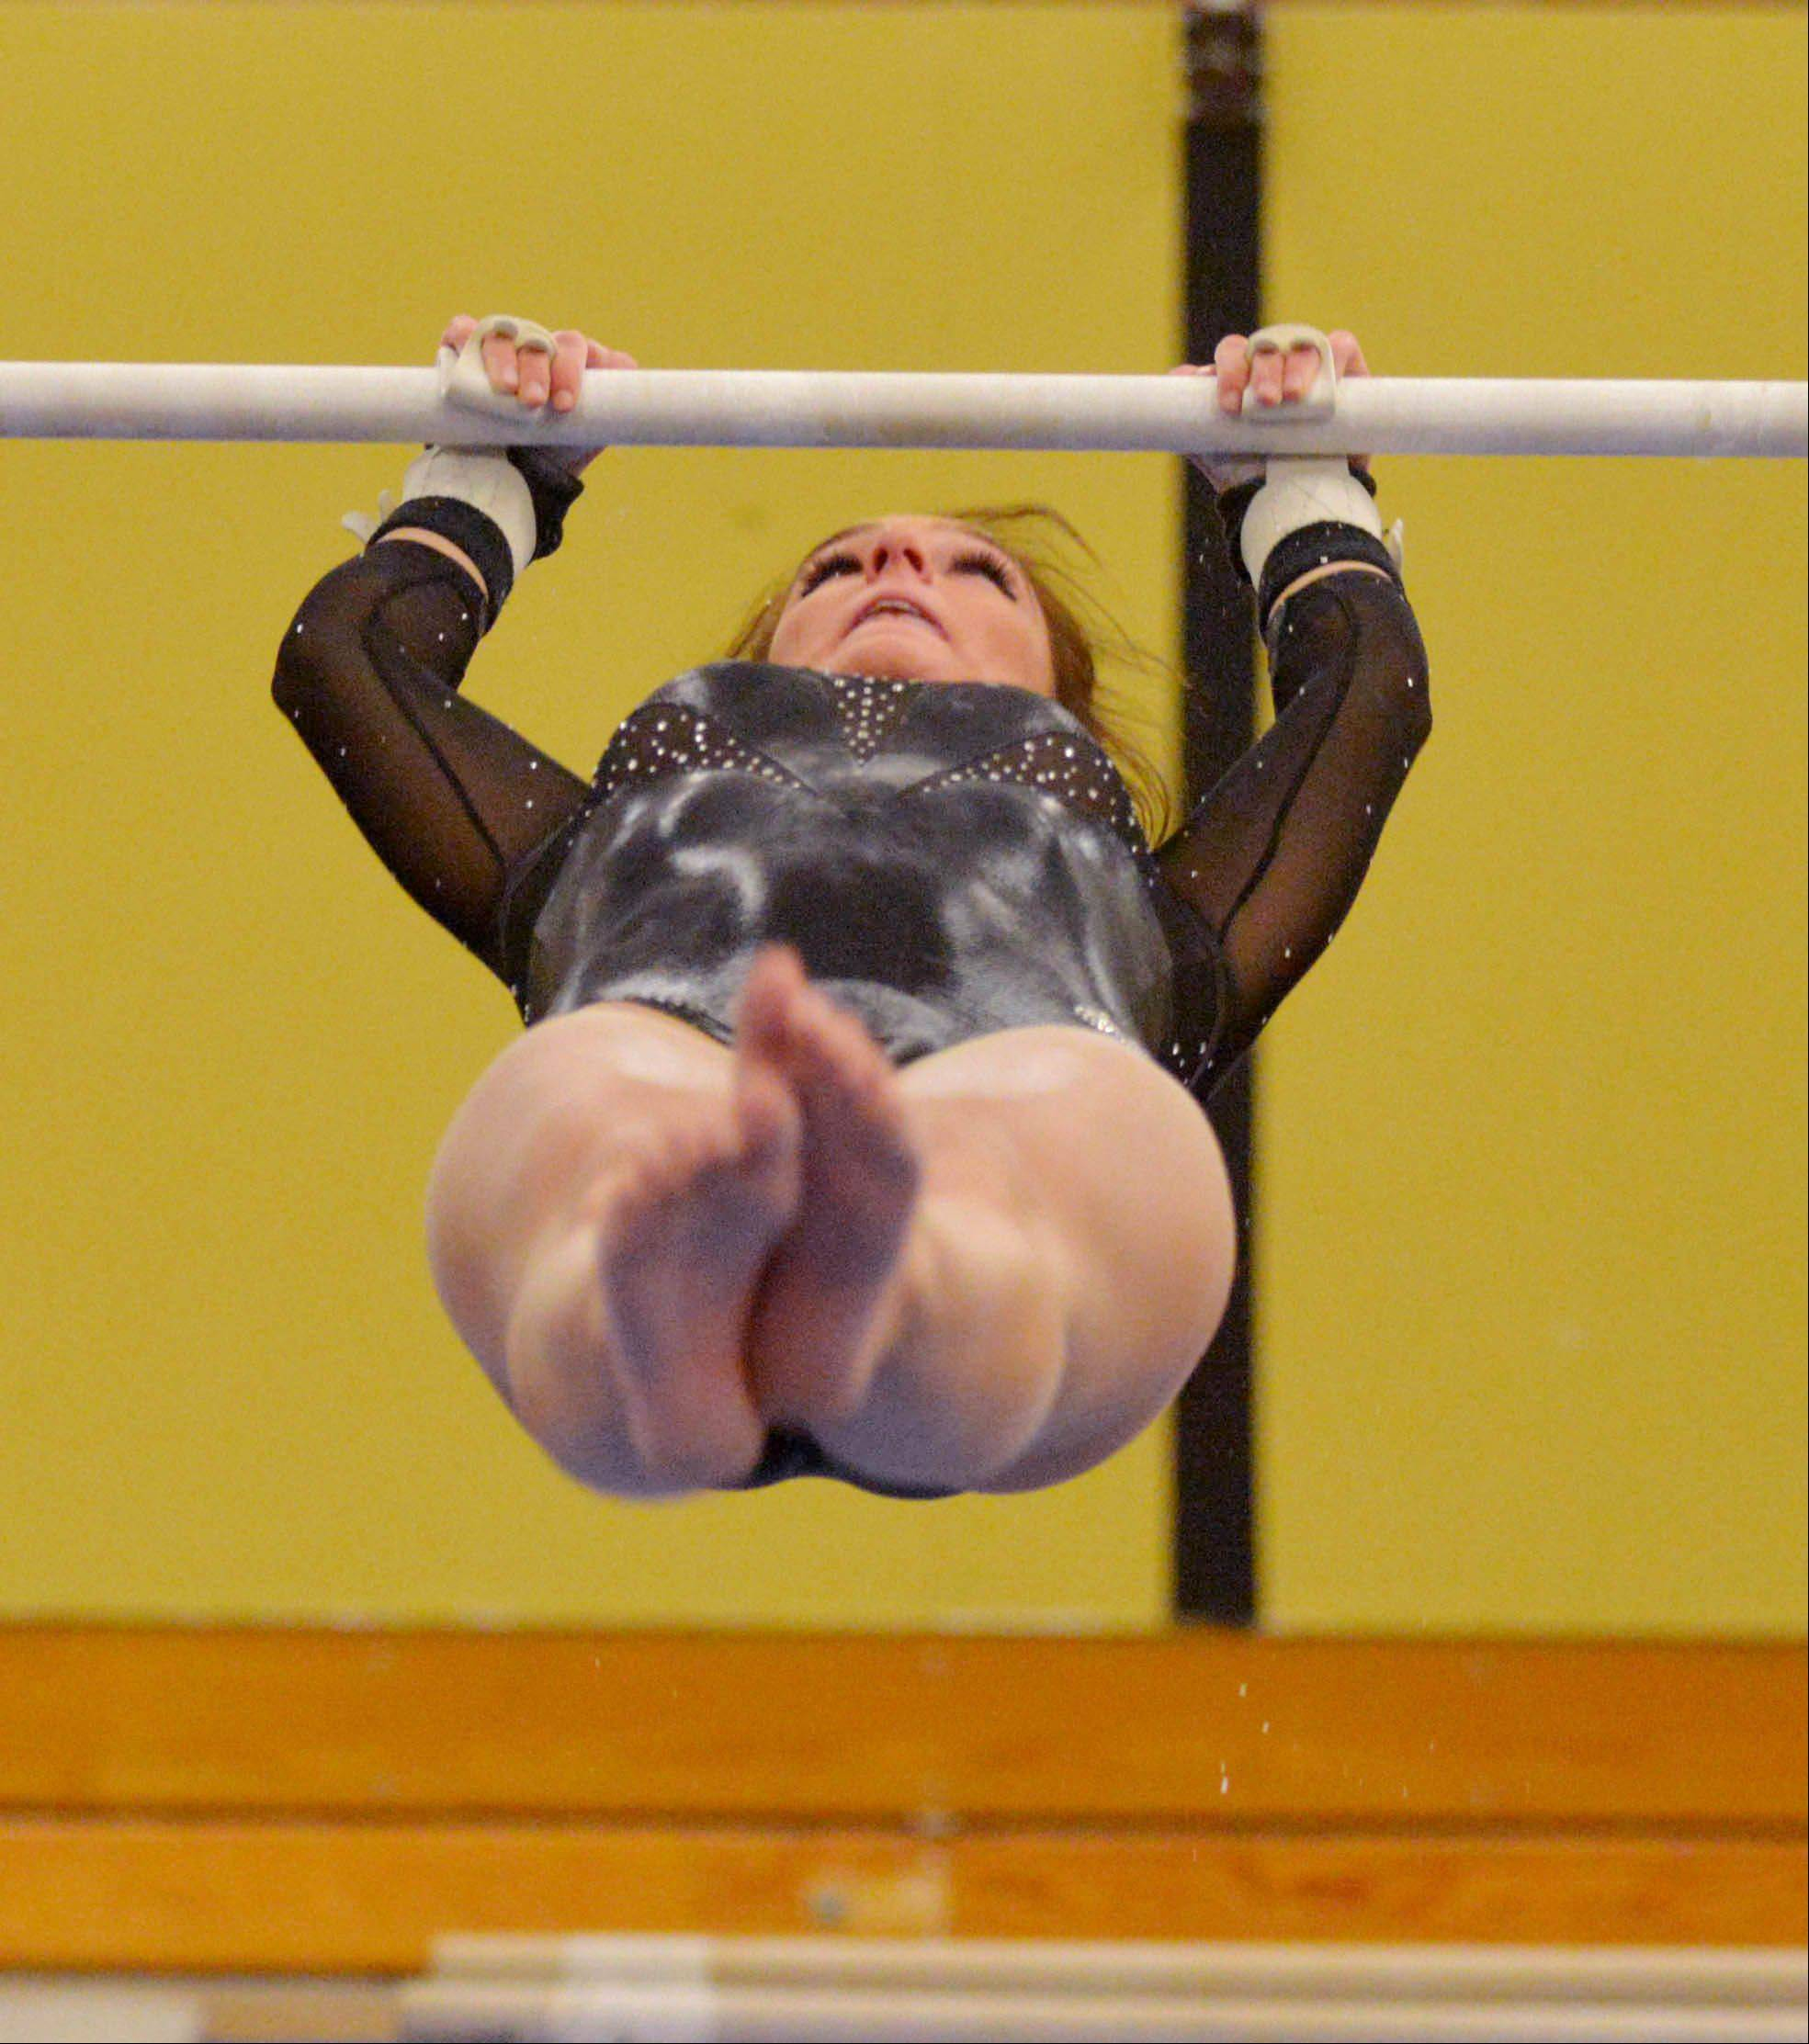 Sierra Thiesse of St. Charles co-op on the bars during the St. Charles co-op at Glenbard North girls gymnastics meet Wednesday.